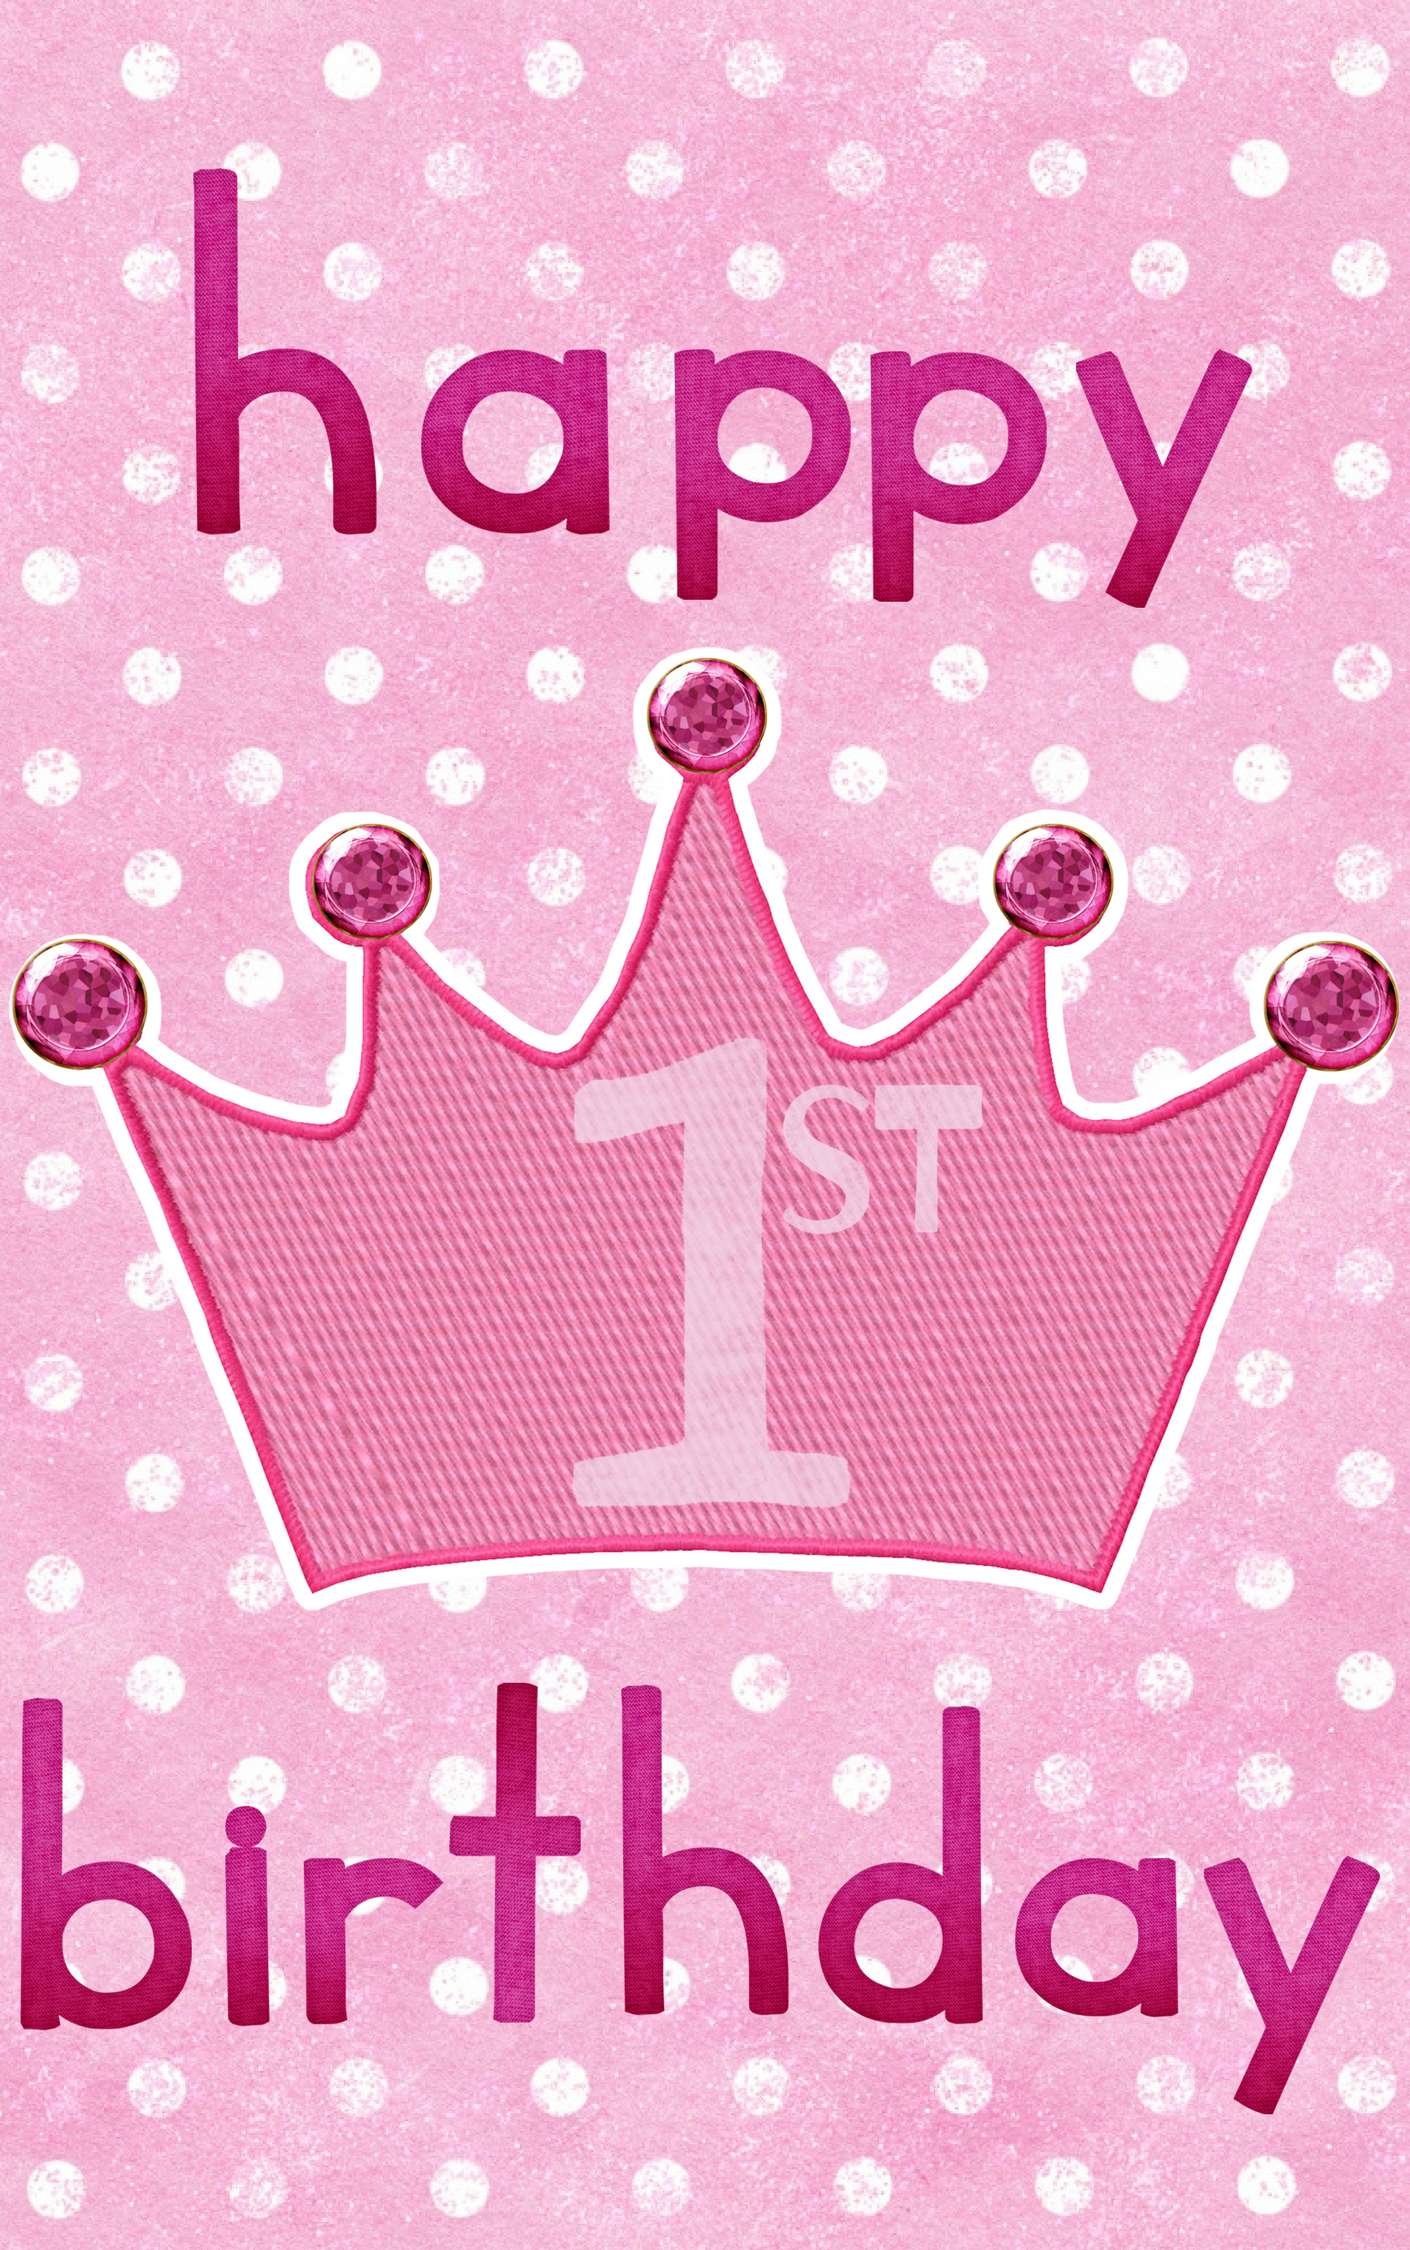 Congratulations on the birthday of your niece - a holiday of the princess